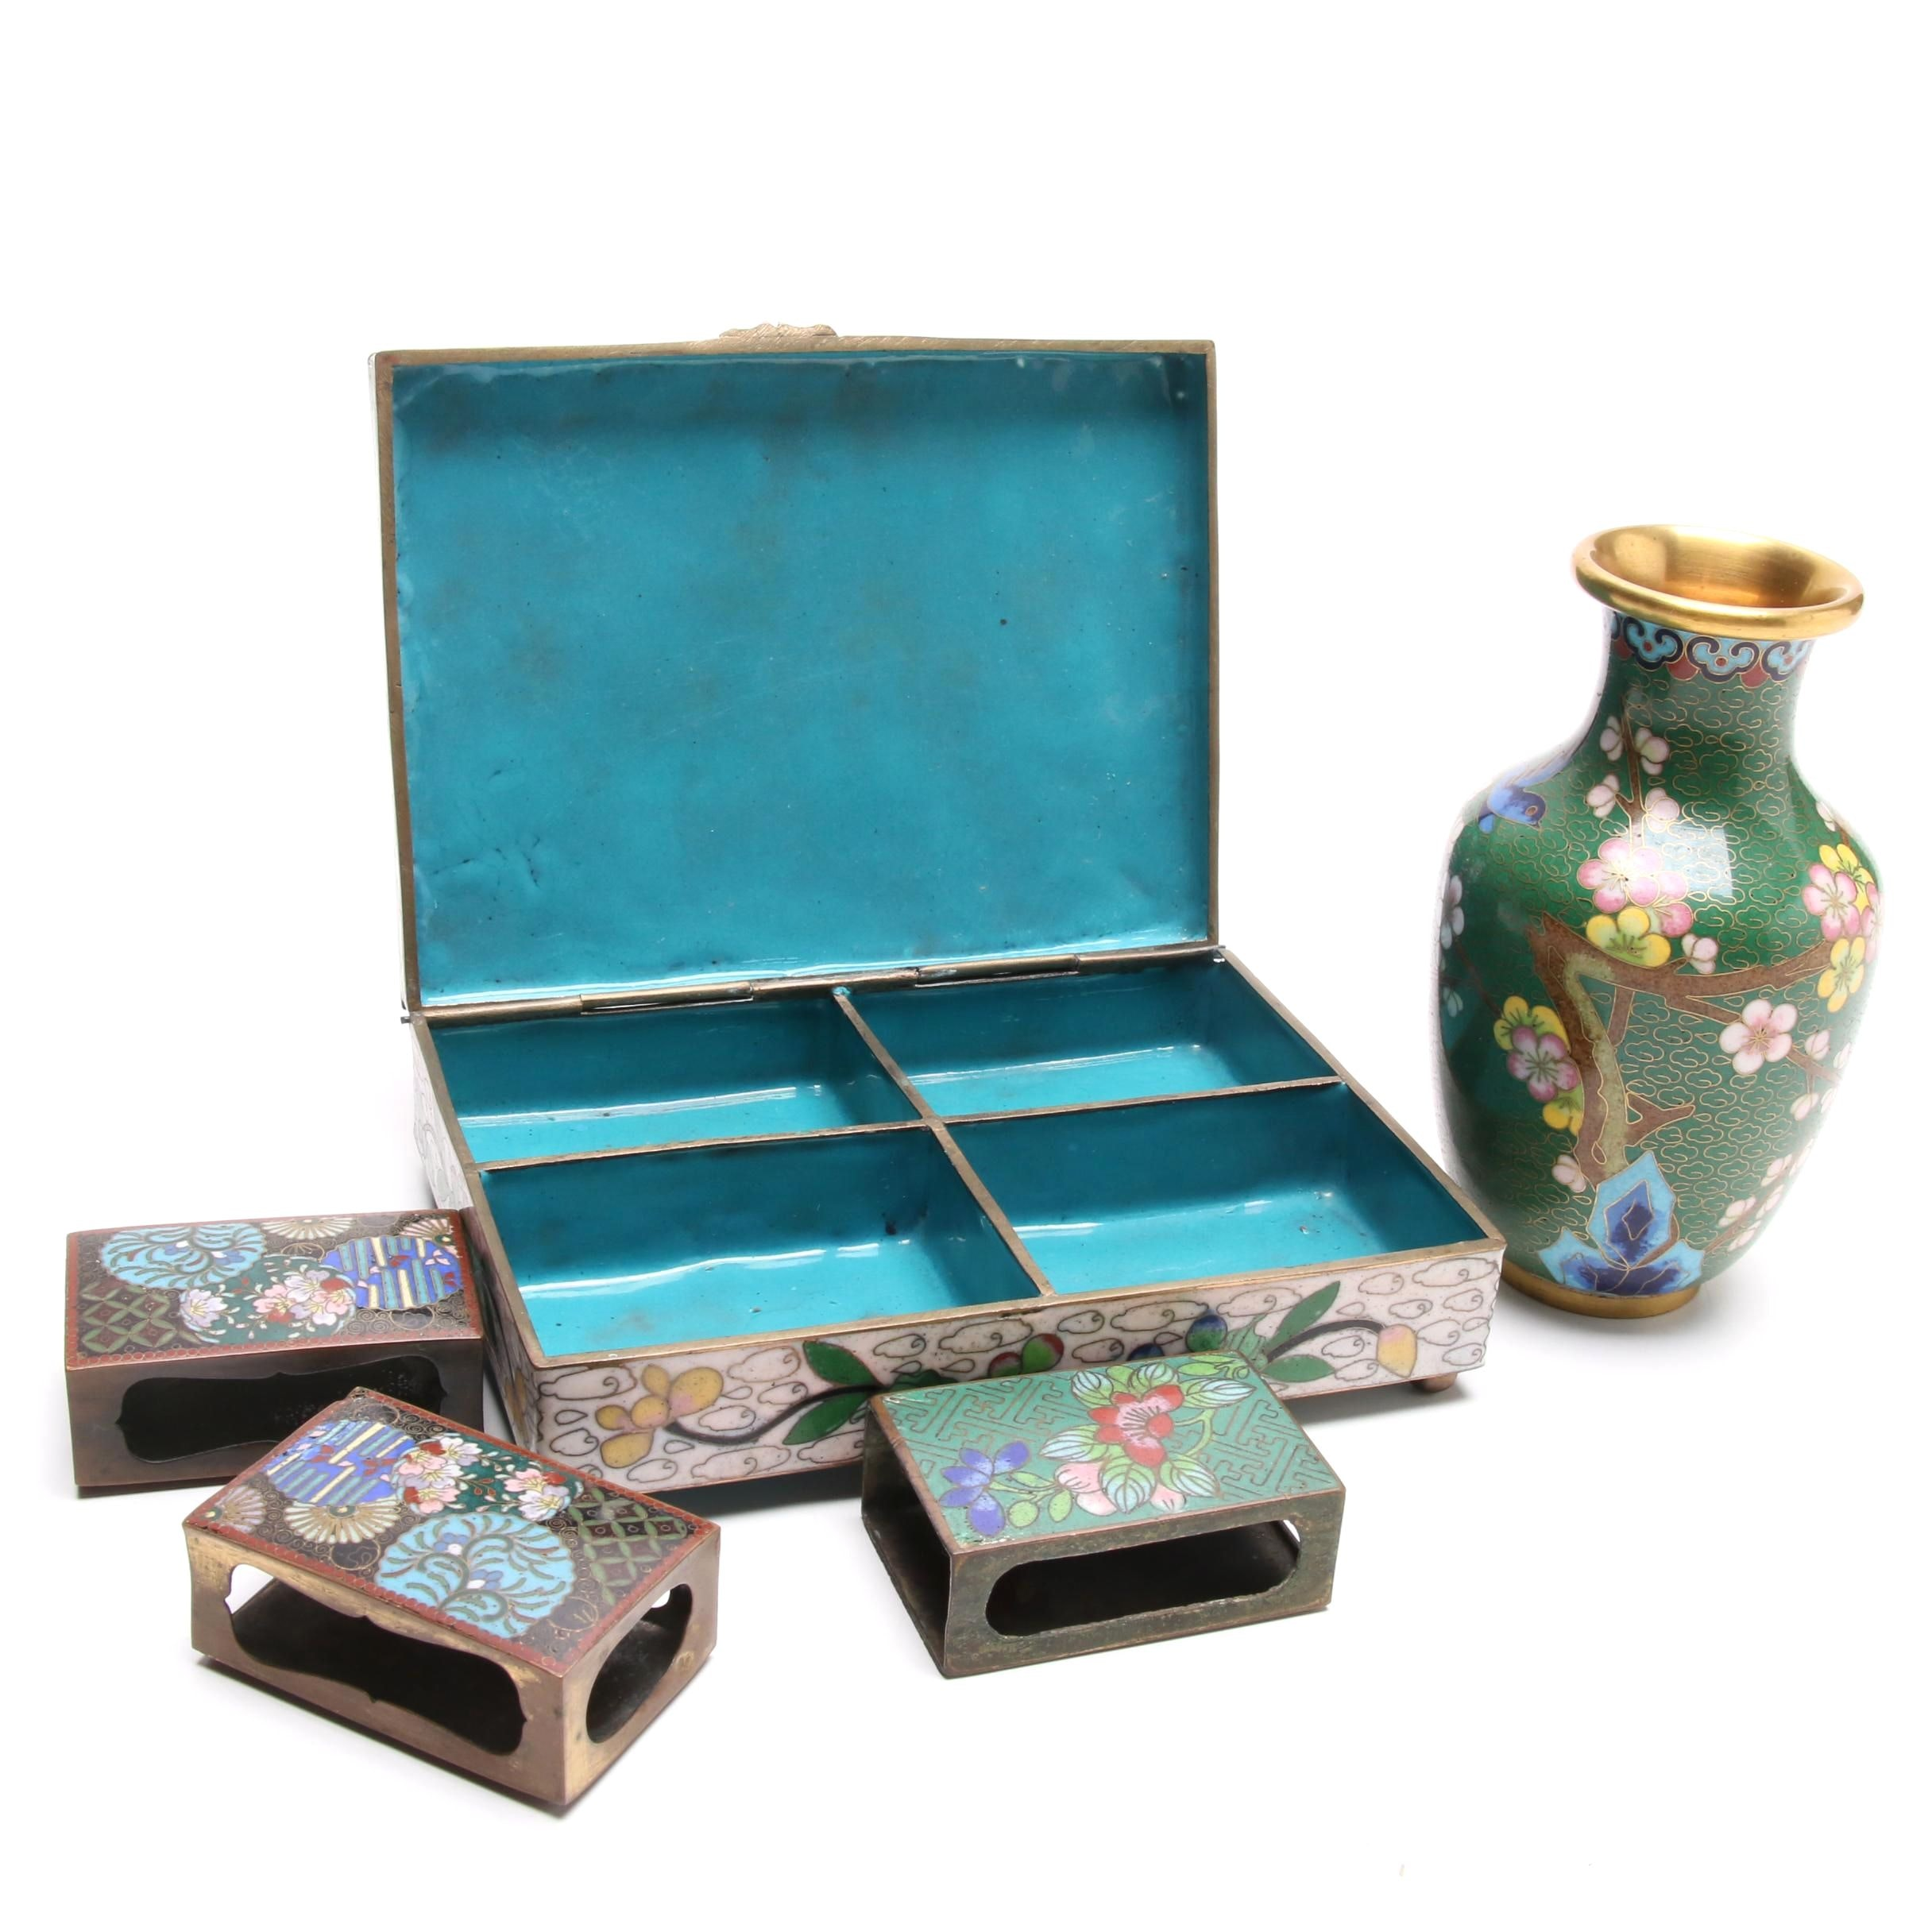 Chinese Cloisonné Cigarette Case and Matchbox Covers with Vase